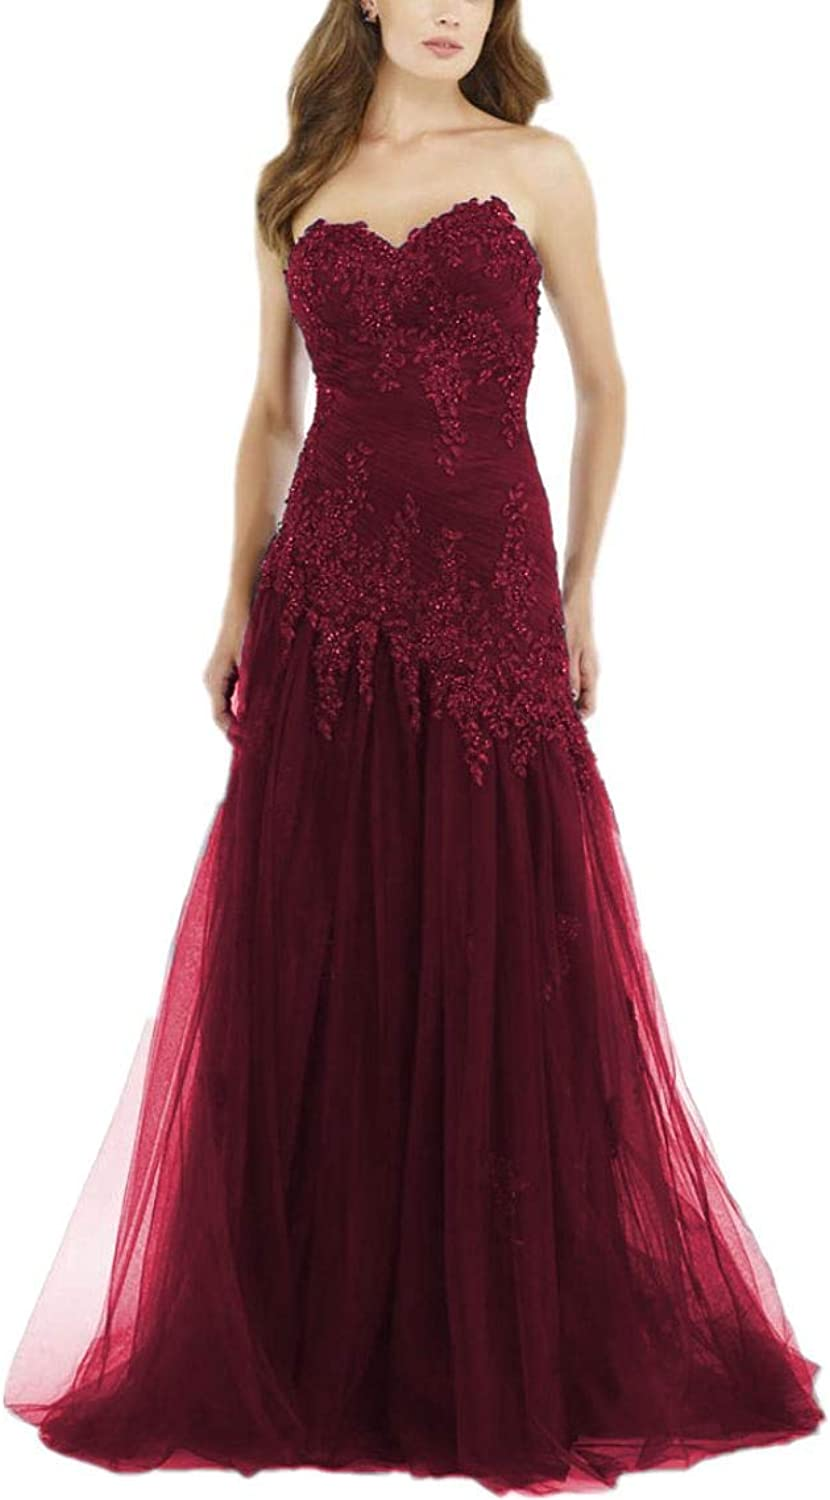 Yisha Bello Women's Lace Applique Mother of The Bride Dress Sweetheart Beaded Long Tulle Evening Formal Party Dress with Shawl 24w Burgundy